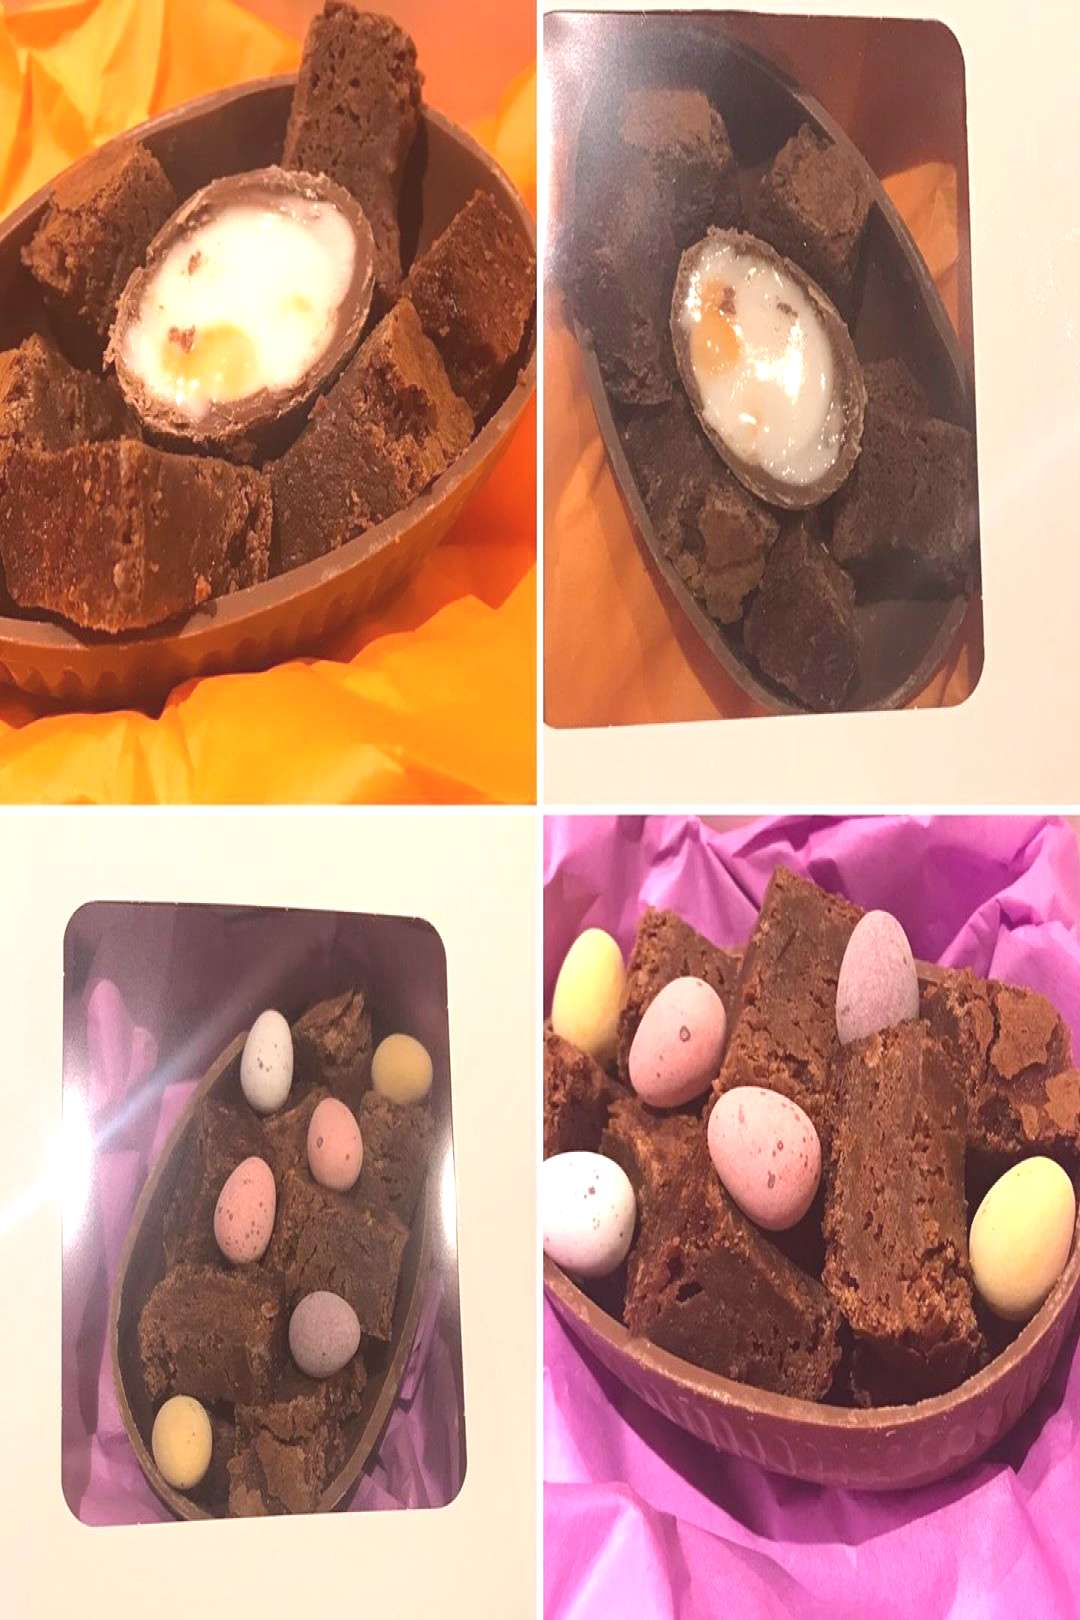 So cake-filled Easter Eggs are popular in bakeries this time of y